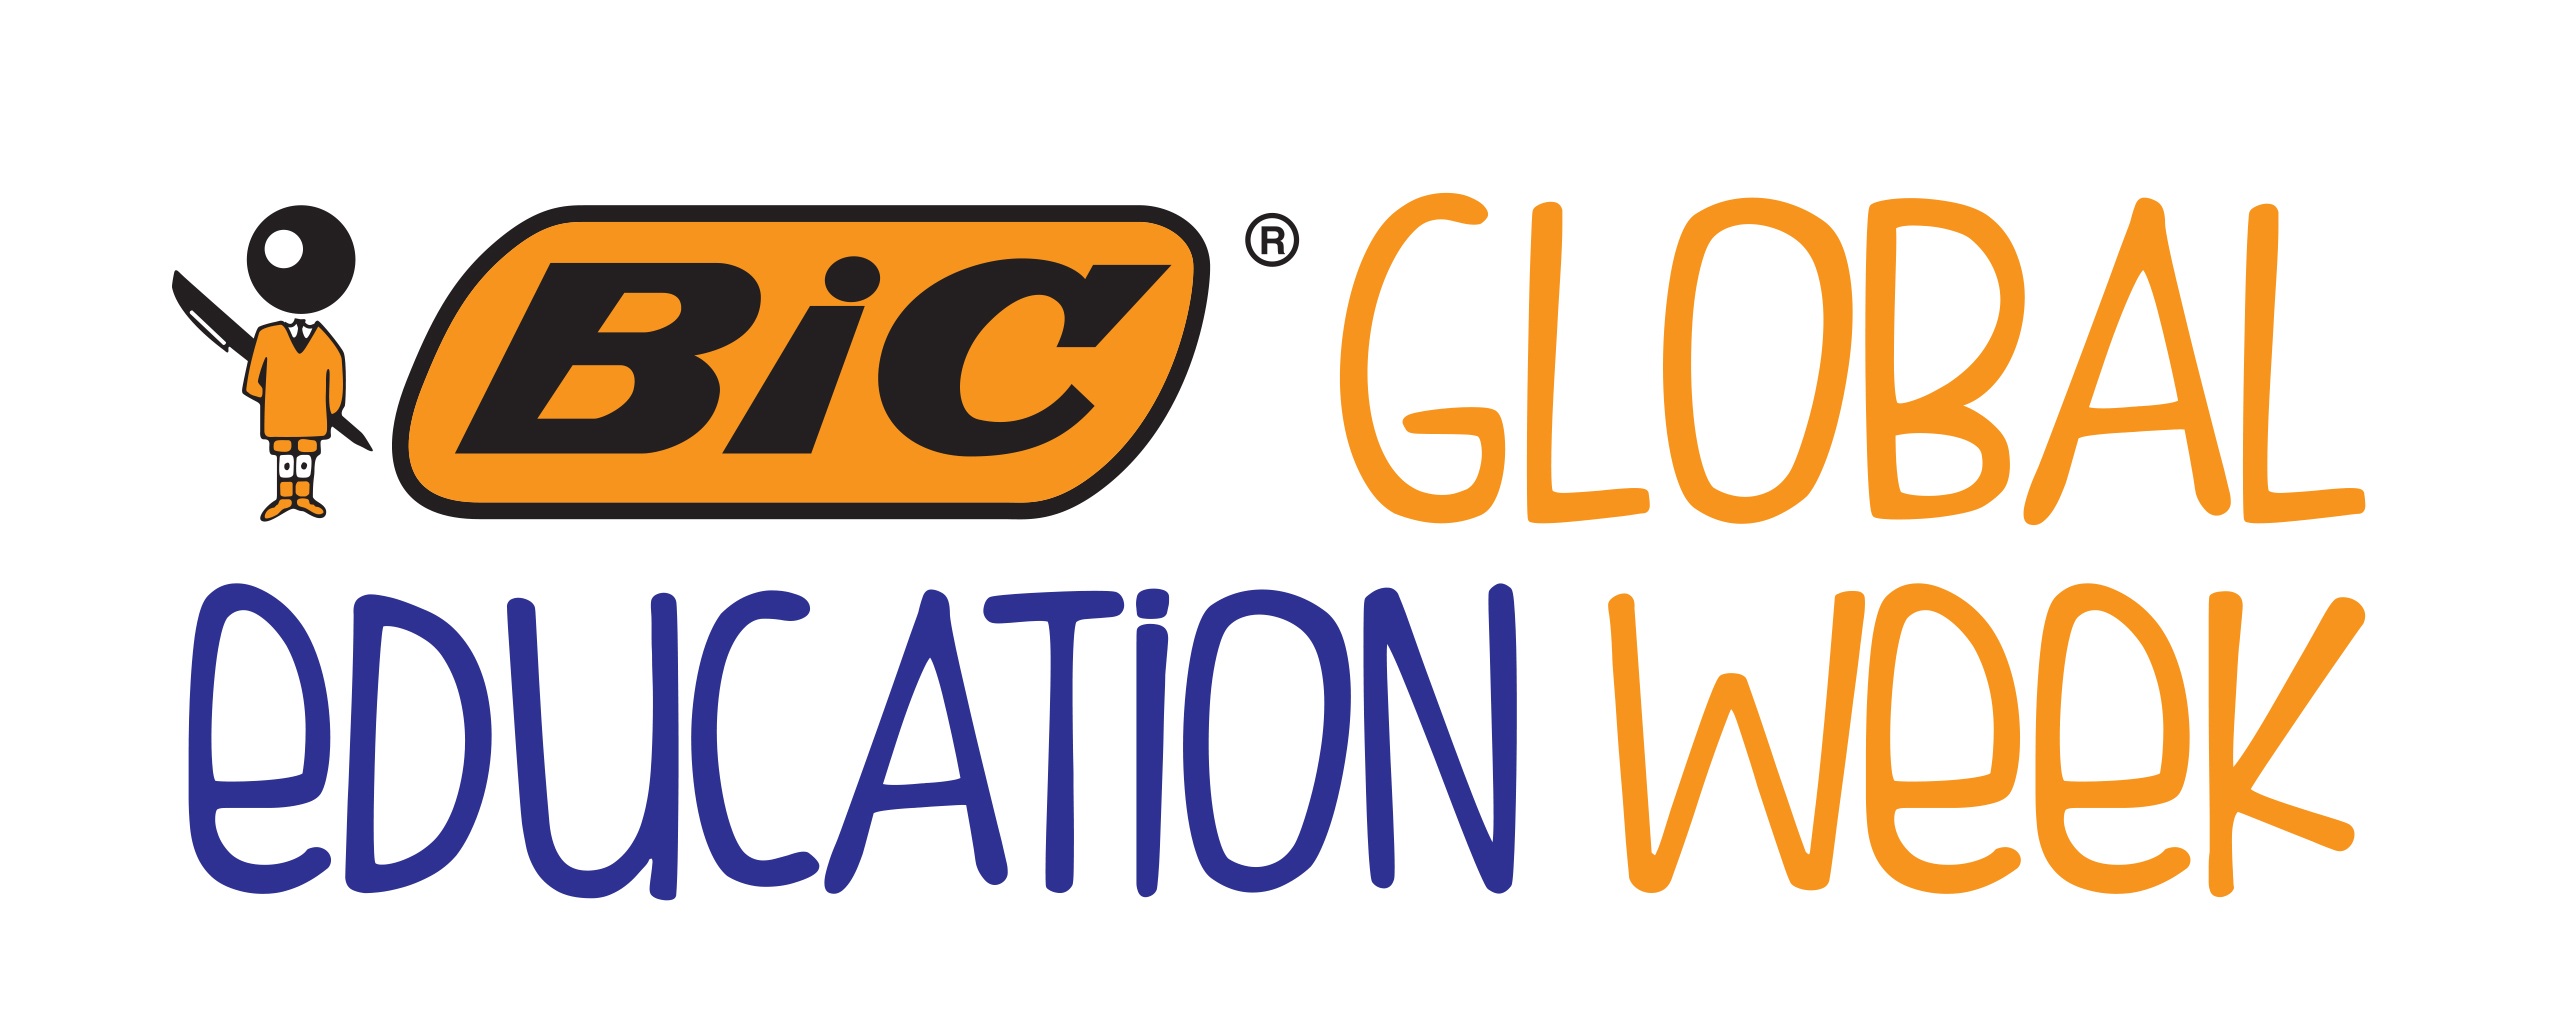 logo bic global education week